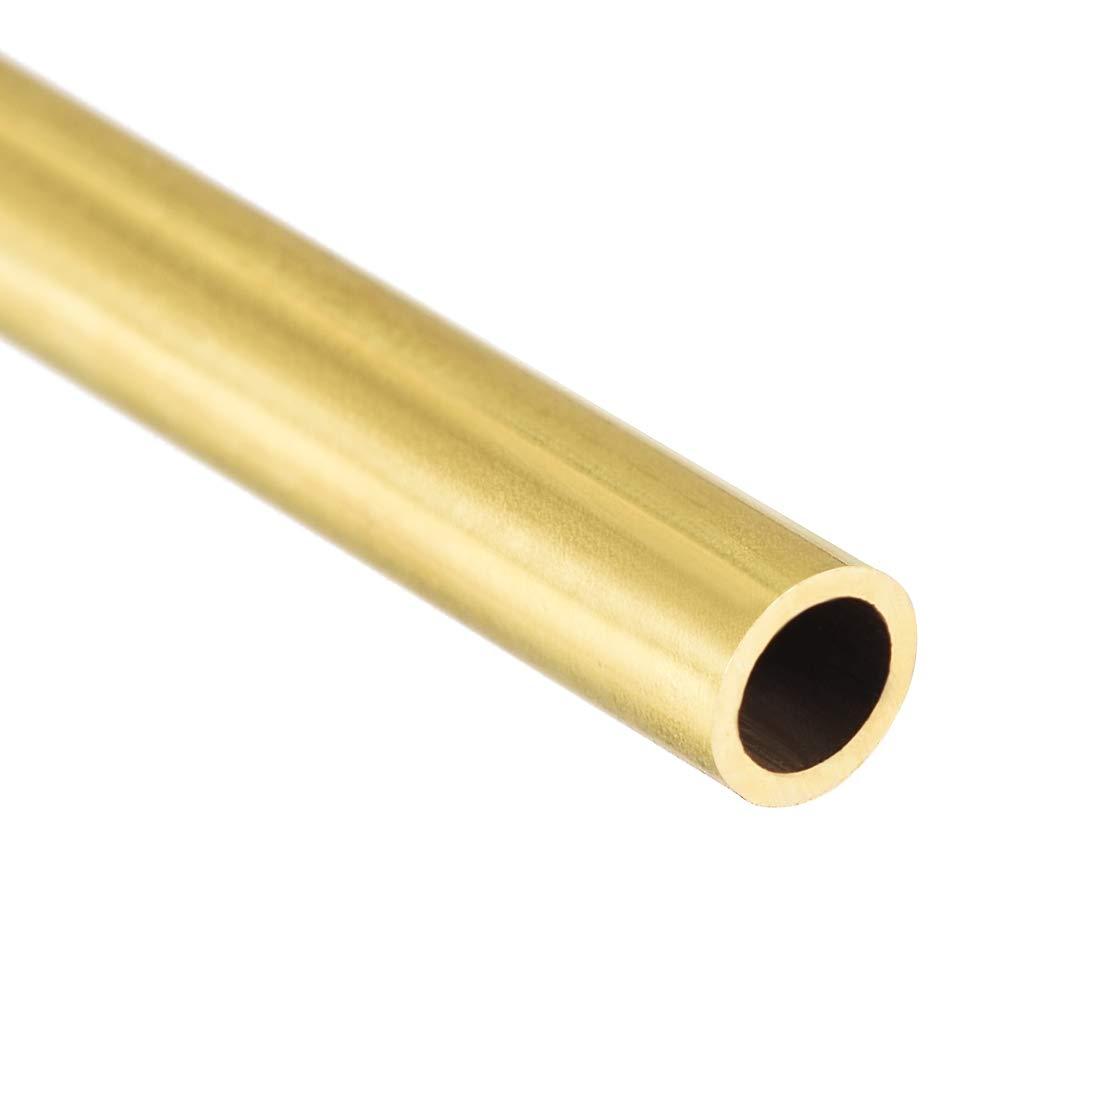 uxcell Brass Round Tube 300mm Length 4mm OD 0.5mm Wall Thickness Seamless Straight Pipe Tubing